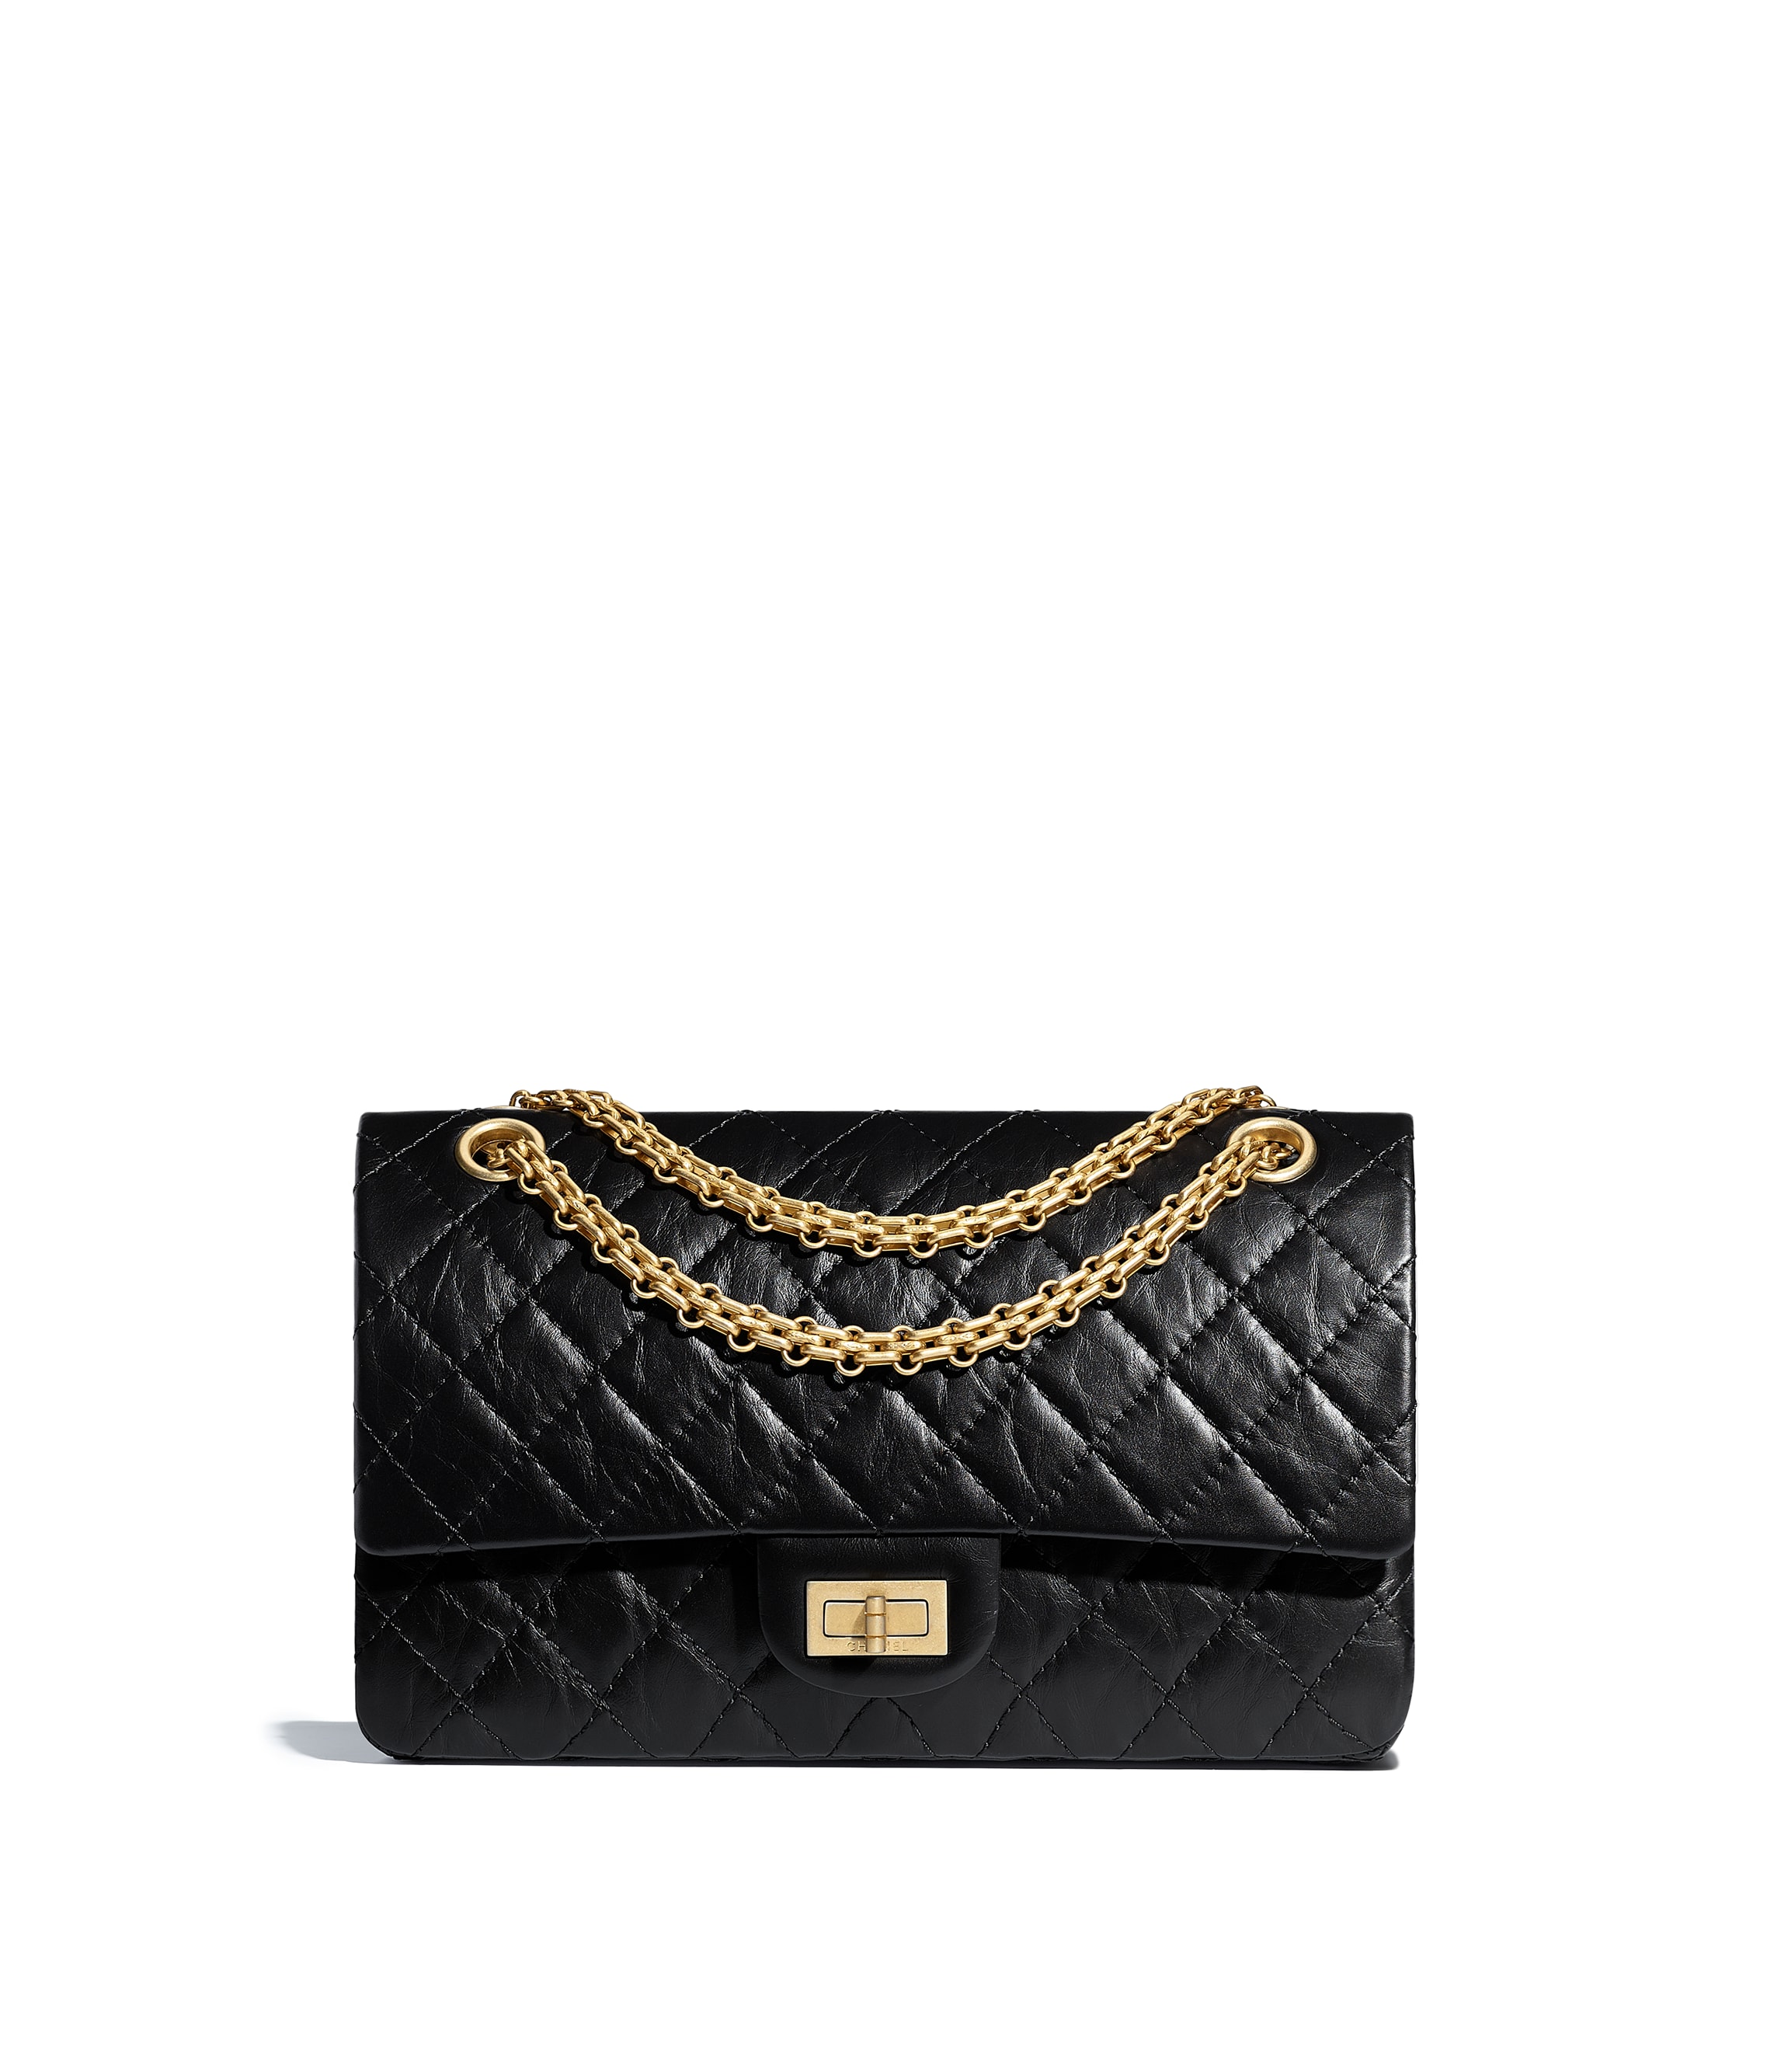 f697fb07b73b 2.55 Handbags - Handbags - CHANEL